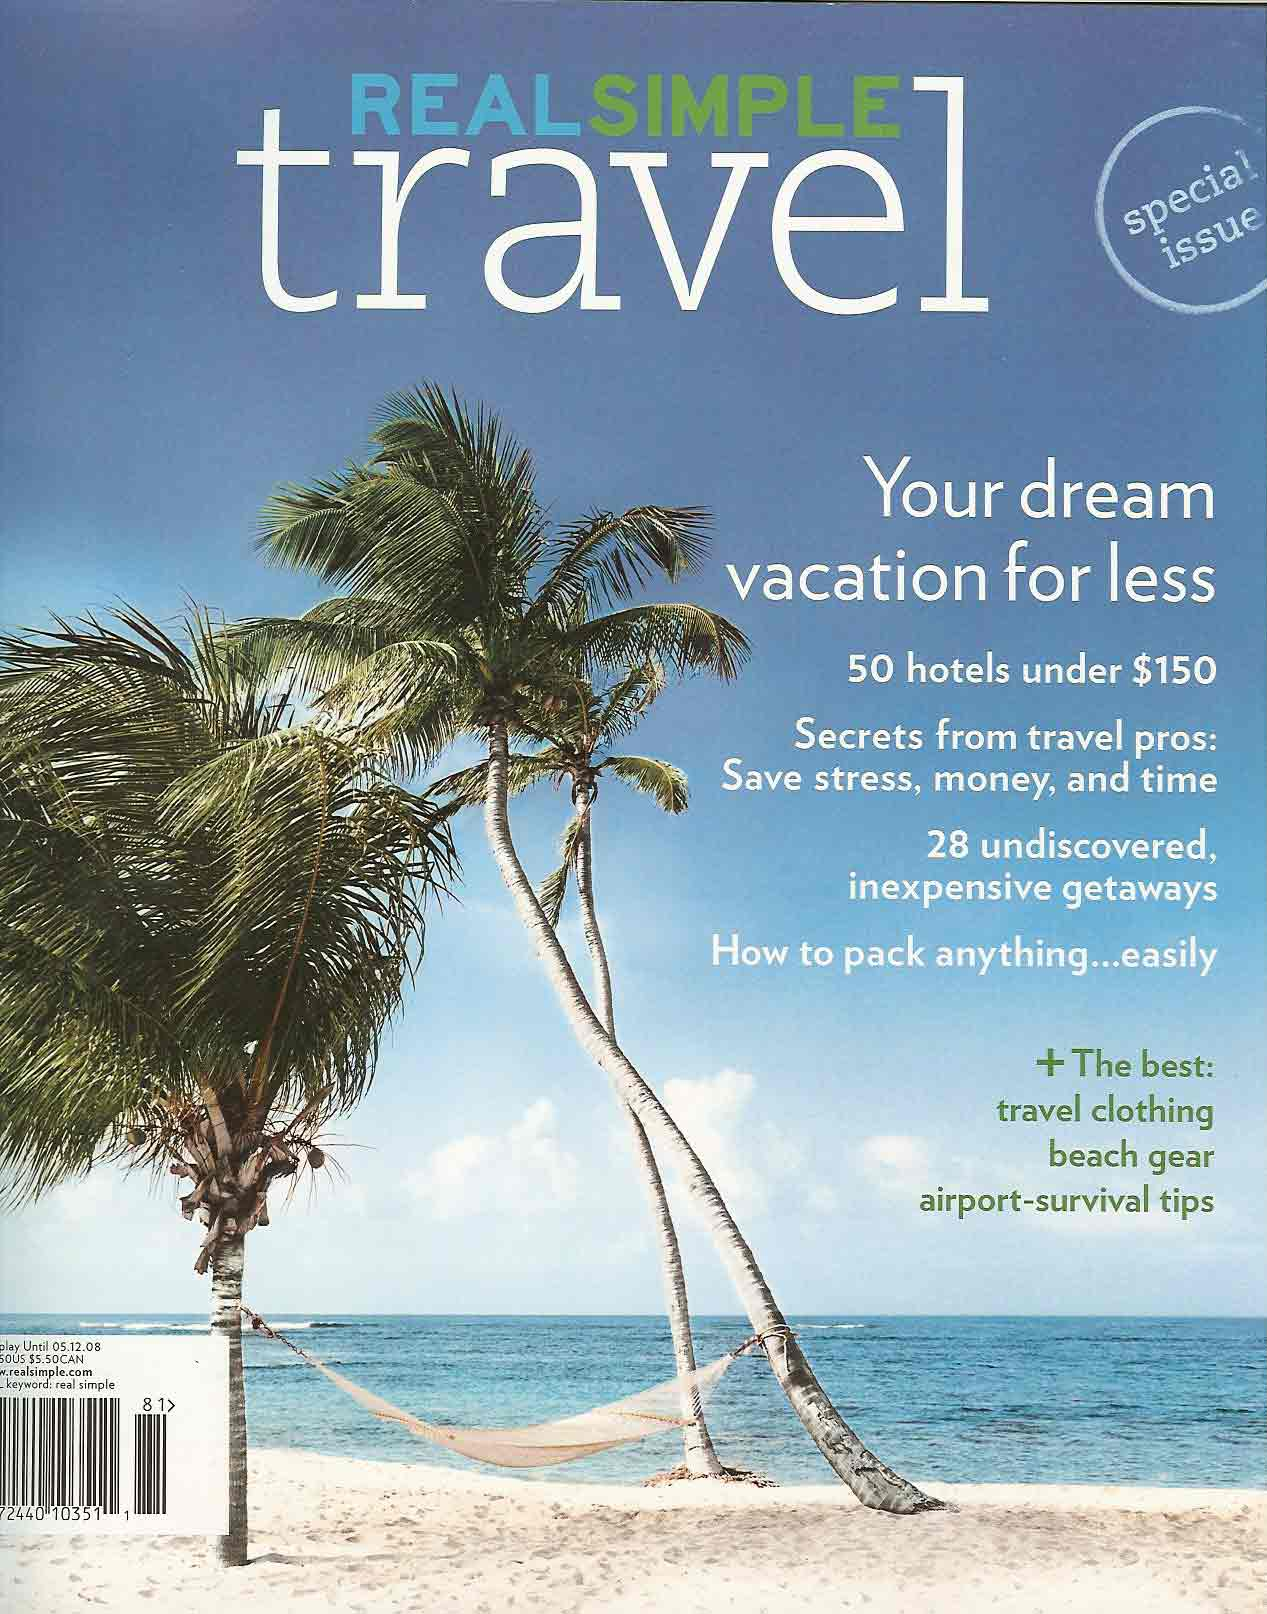 Real Simple Travel- May 2008